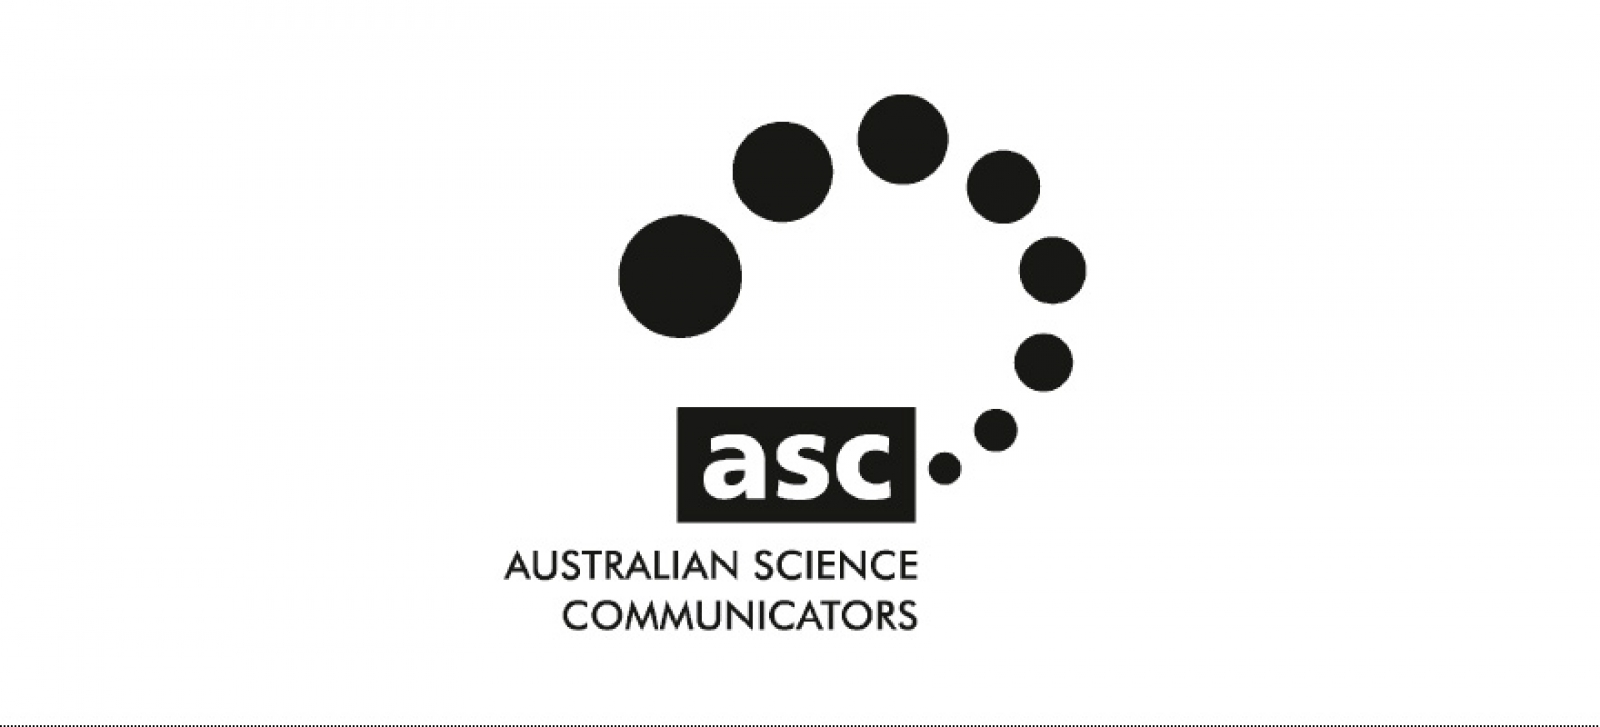 Australian Science Communicators